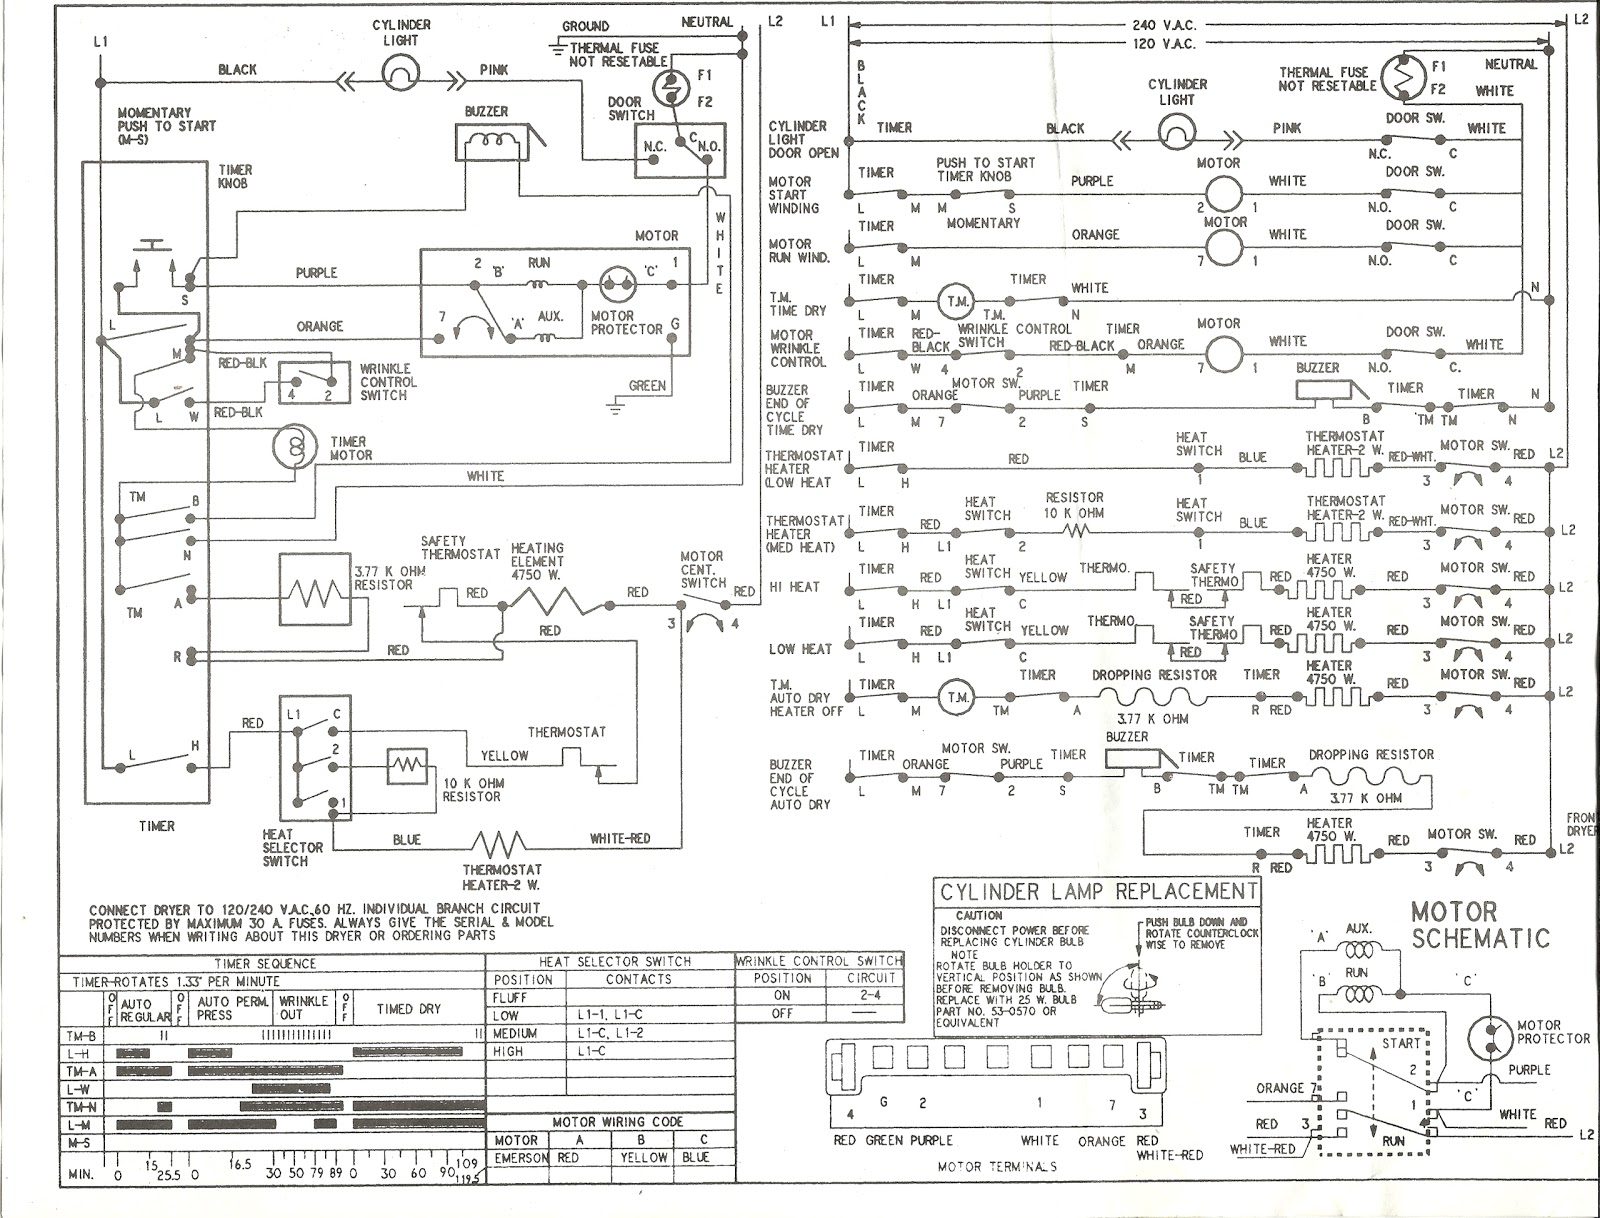 Electric Dryer Wiring Schematic - K2 Wiring Diagram on